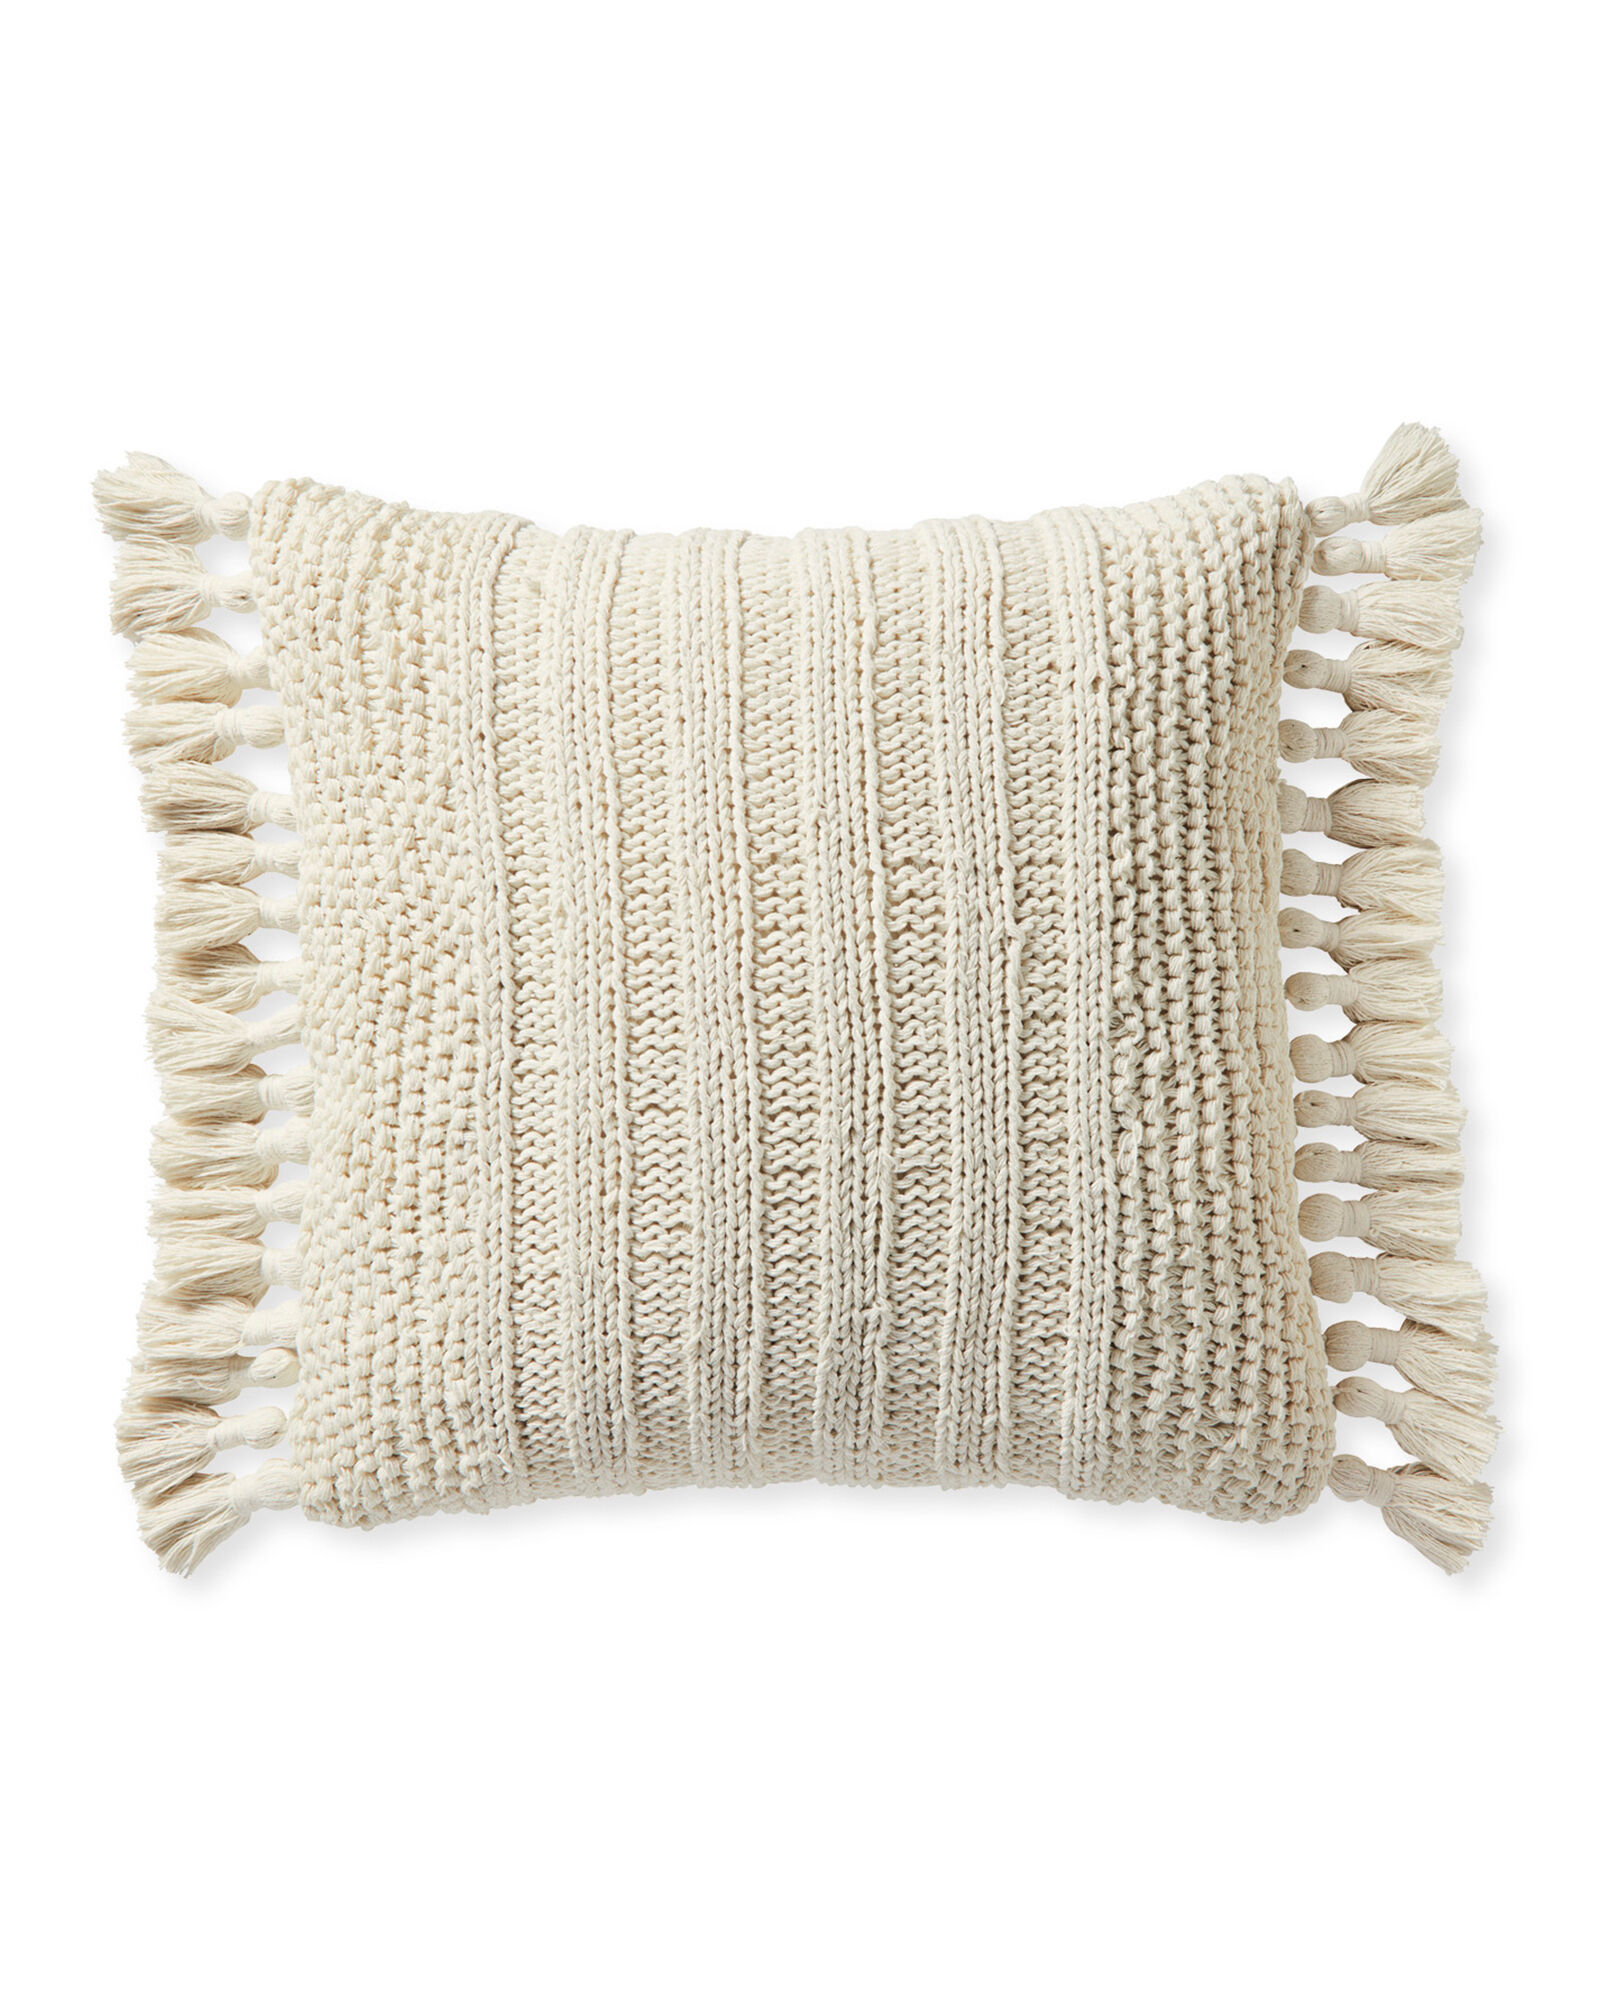 Sequoia Pillow Cover